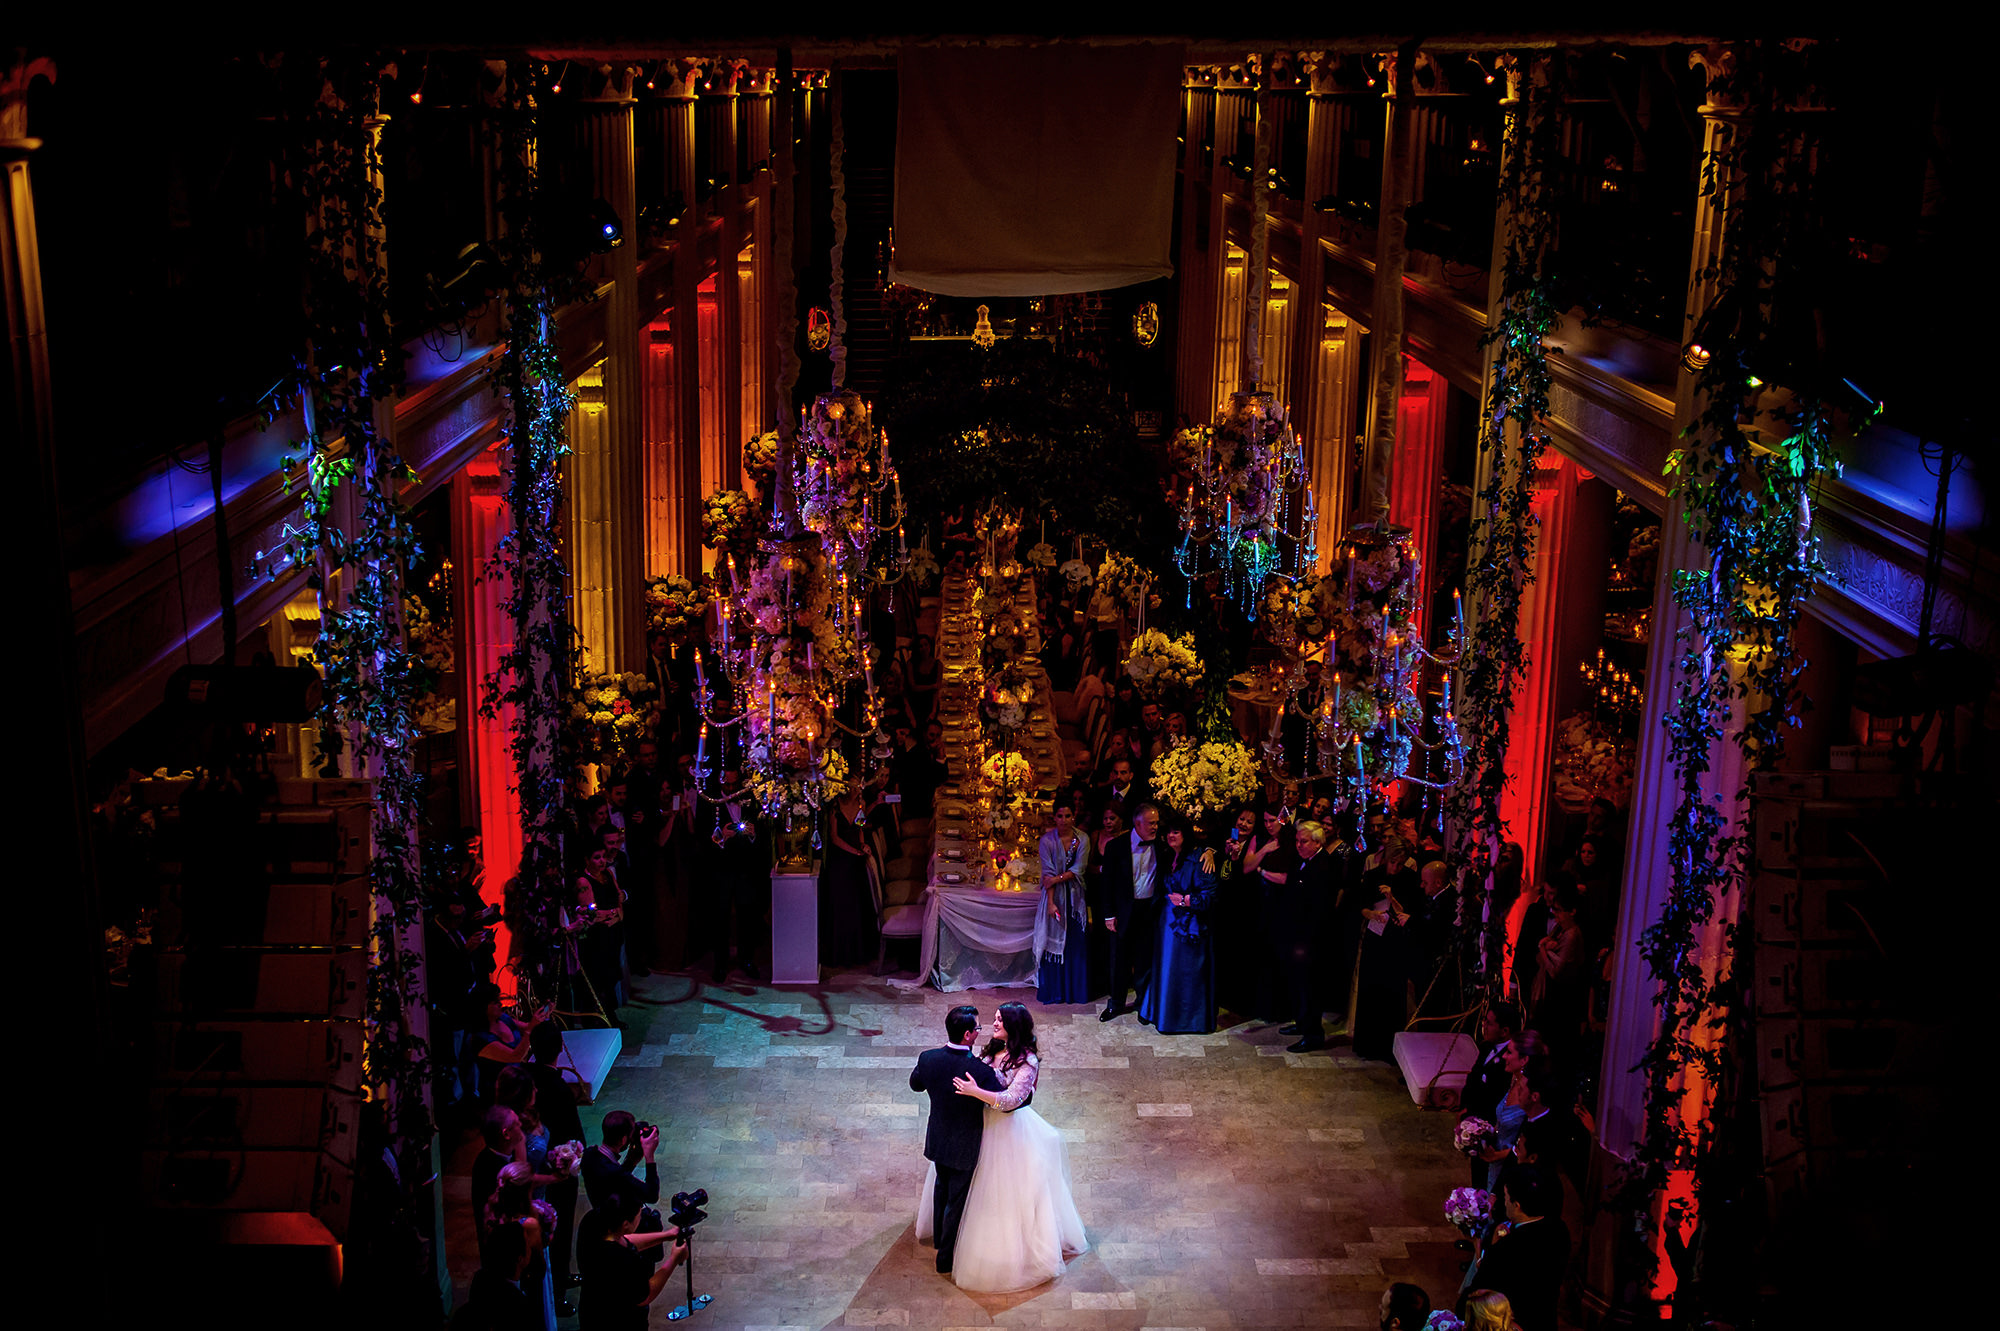 Couple's first dance in a luxurious, colorful reception setting, by Davina Plus Daniel